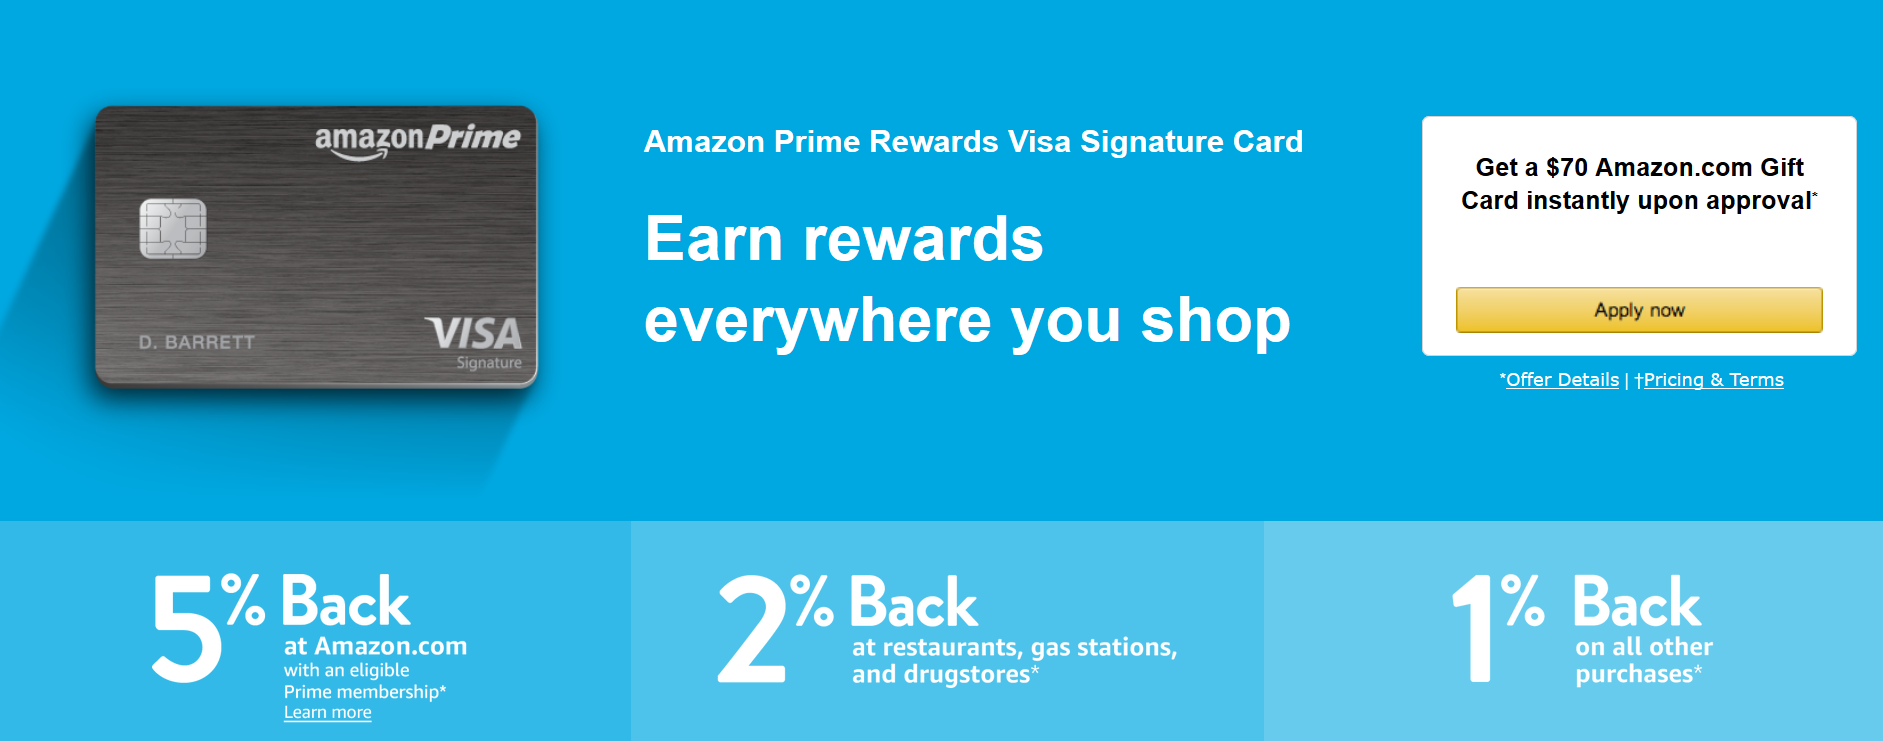 earn rewards and points?